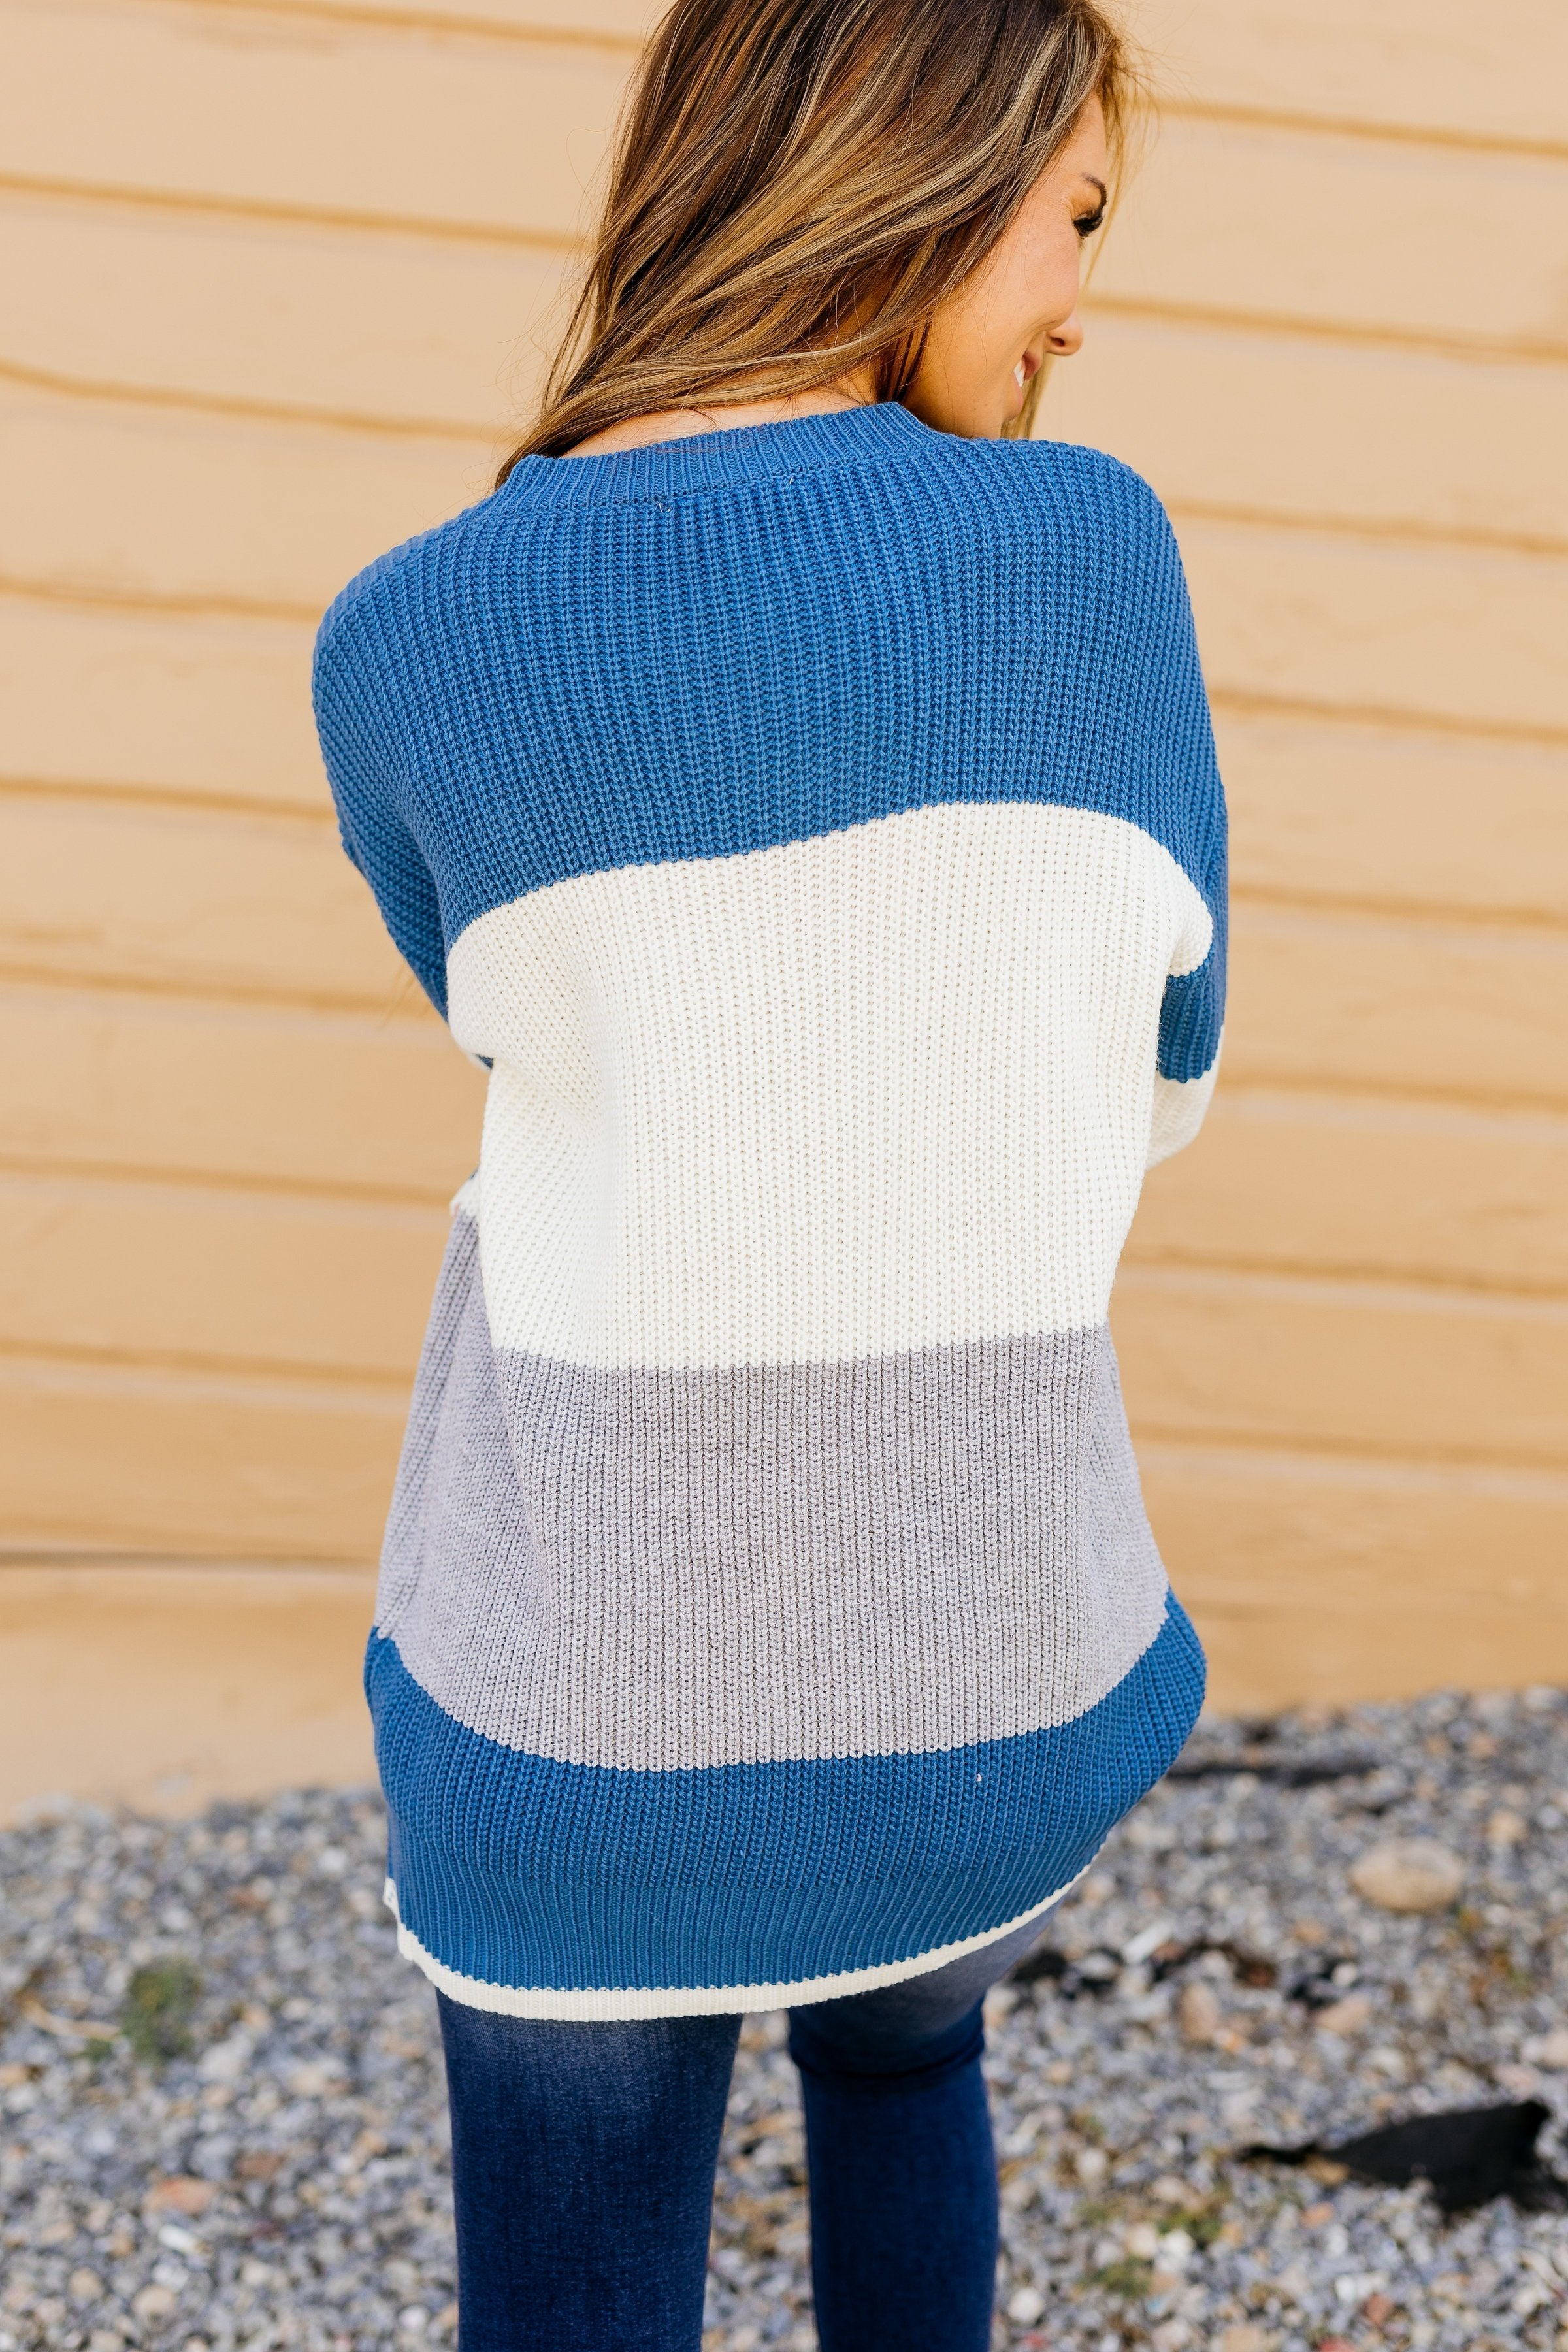 Cozy Casual Color Block Sweater In Blue - ALL SALES FINAL